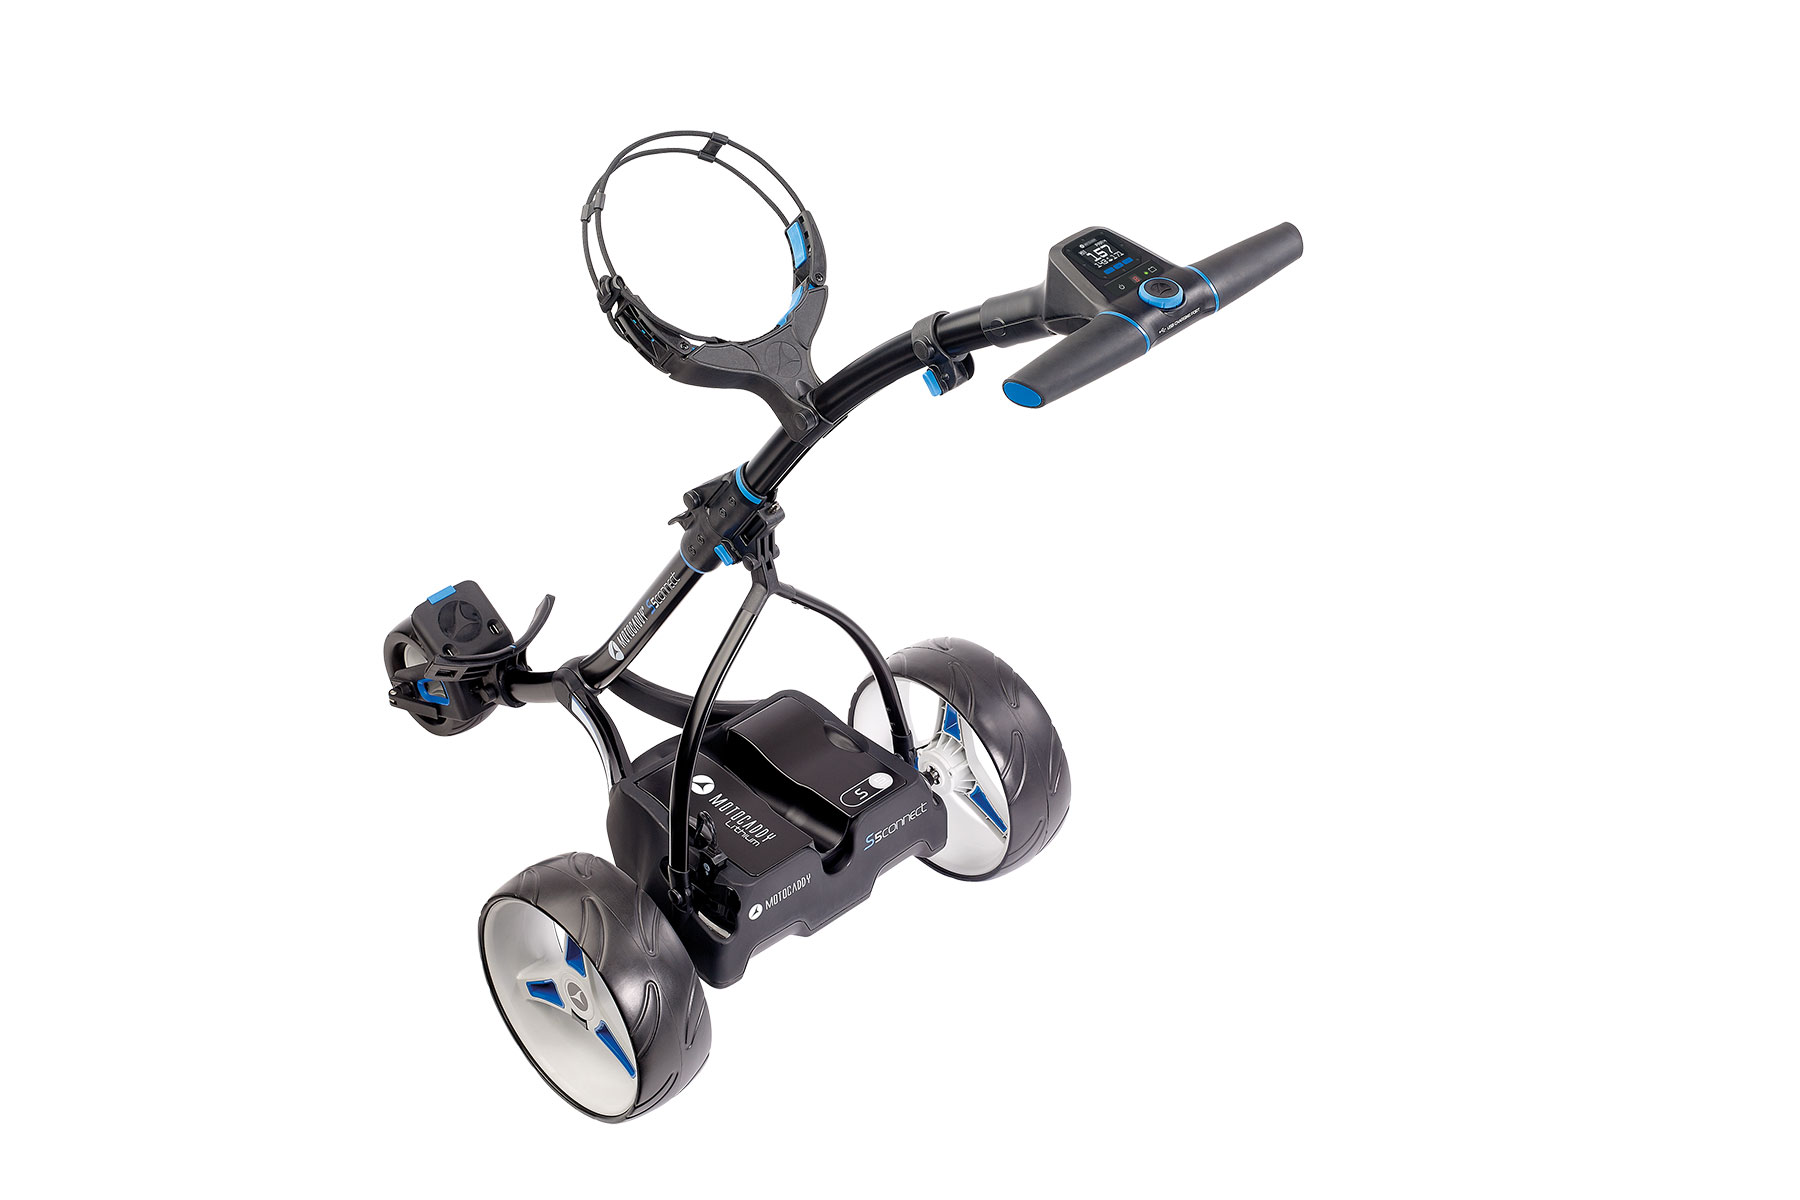 Motocaddy S5 Connect Standard Range Lithium Electric